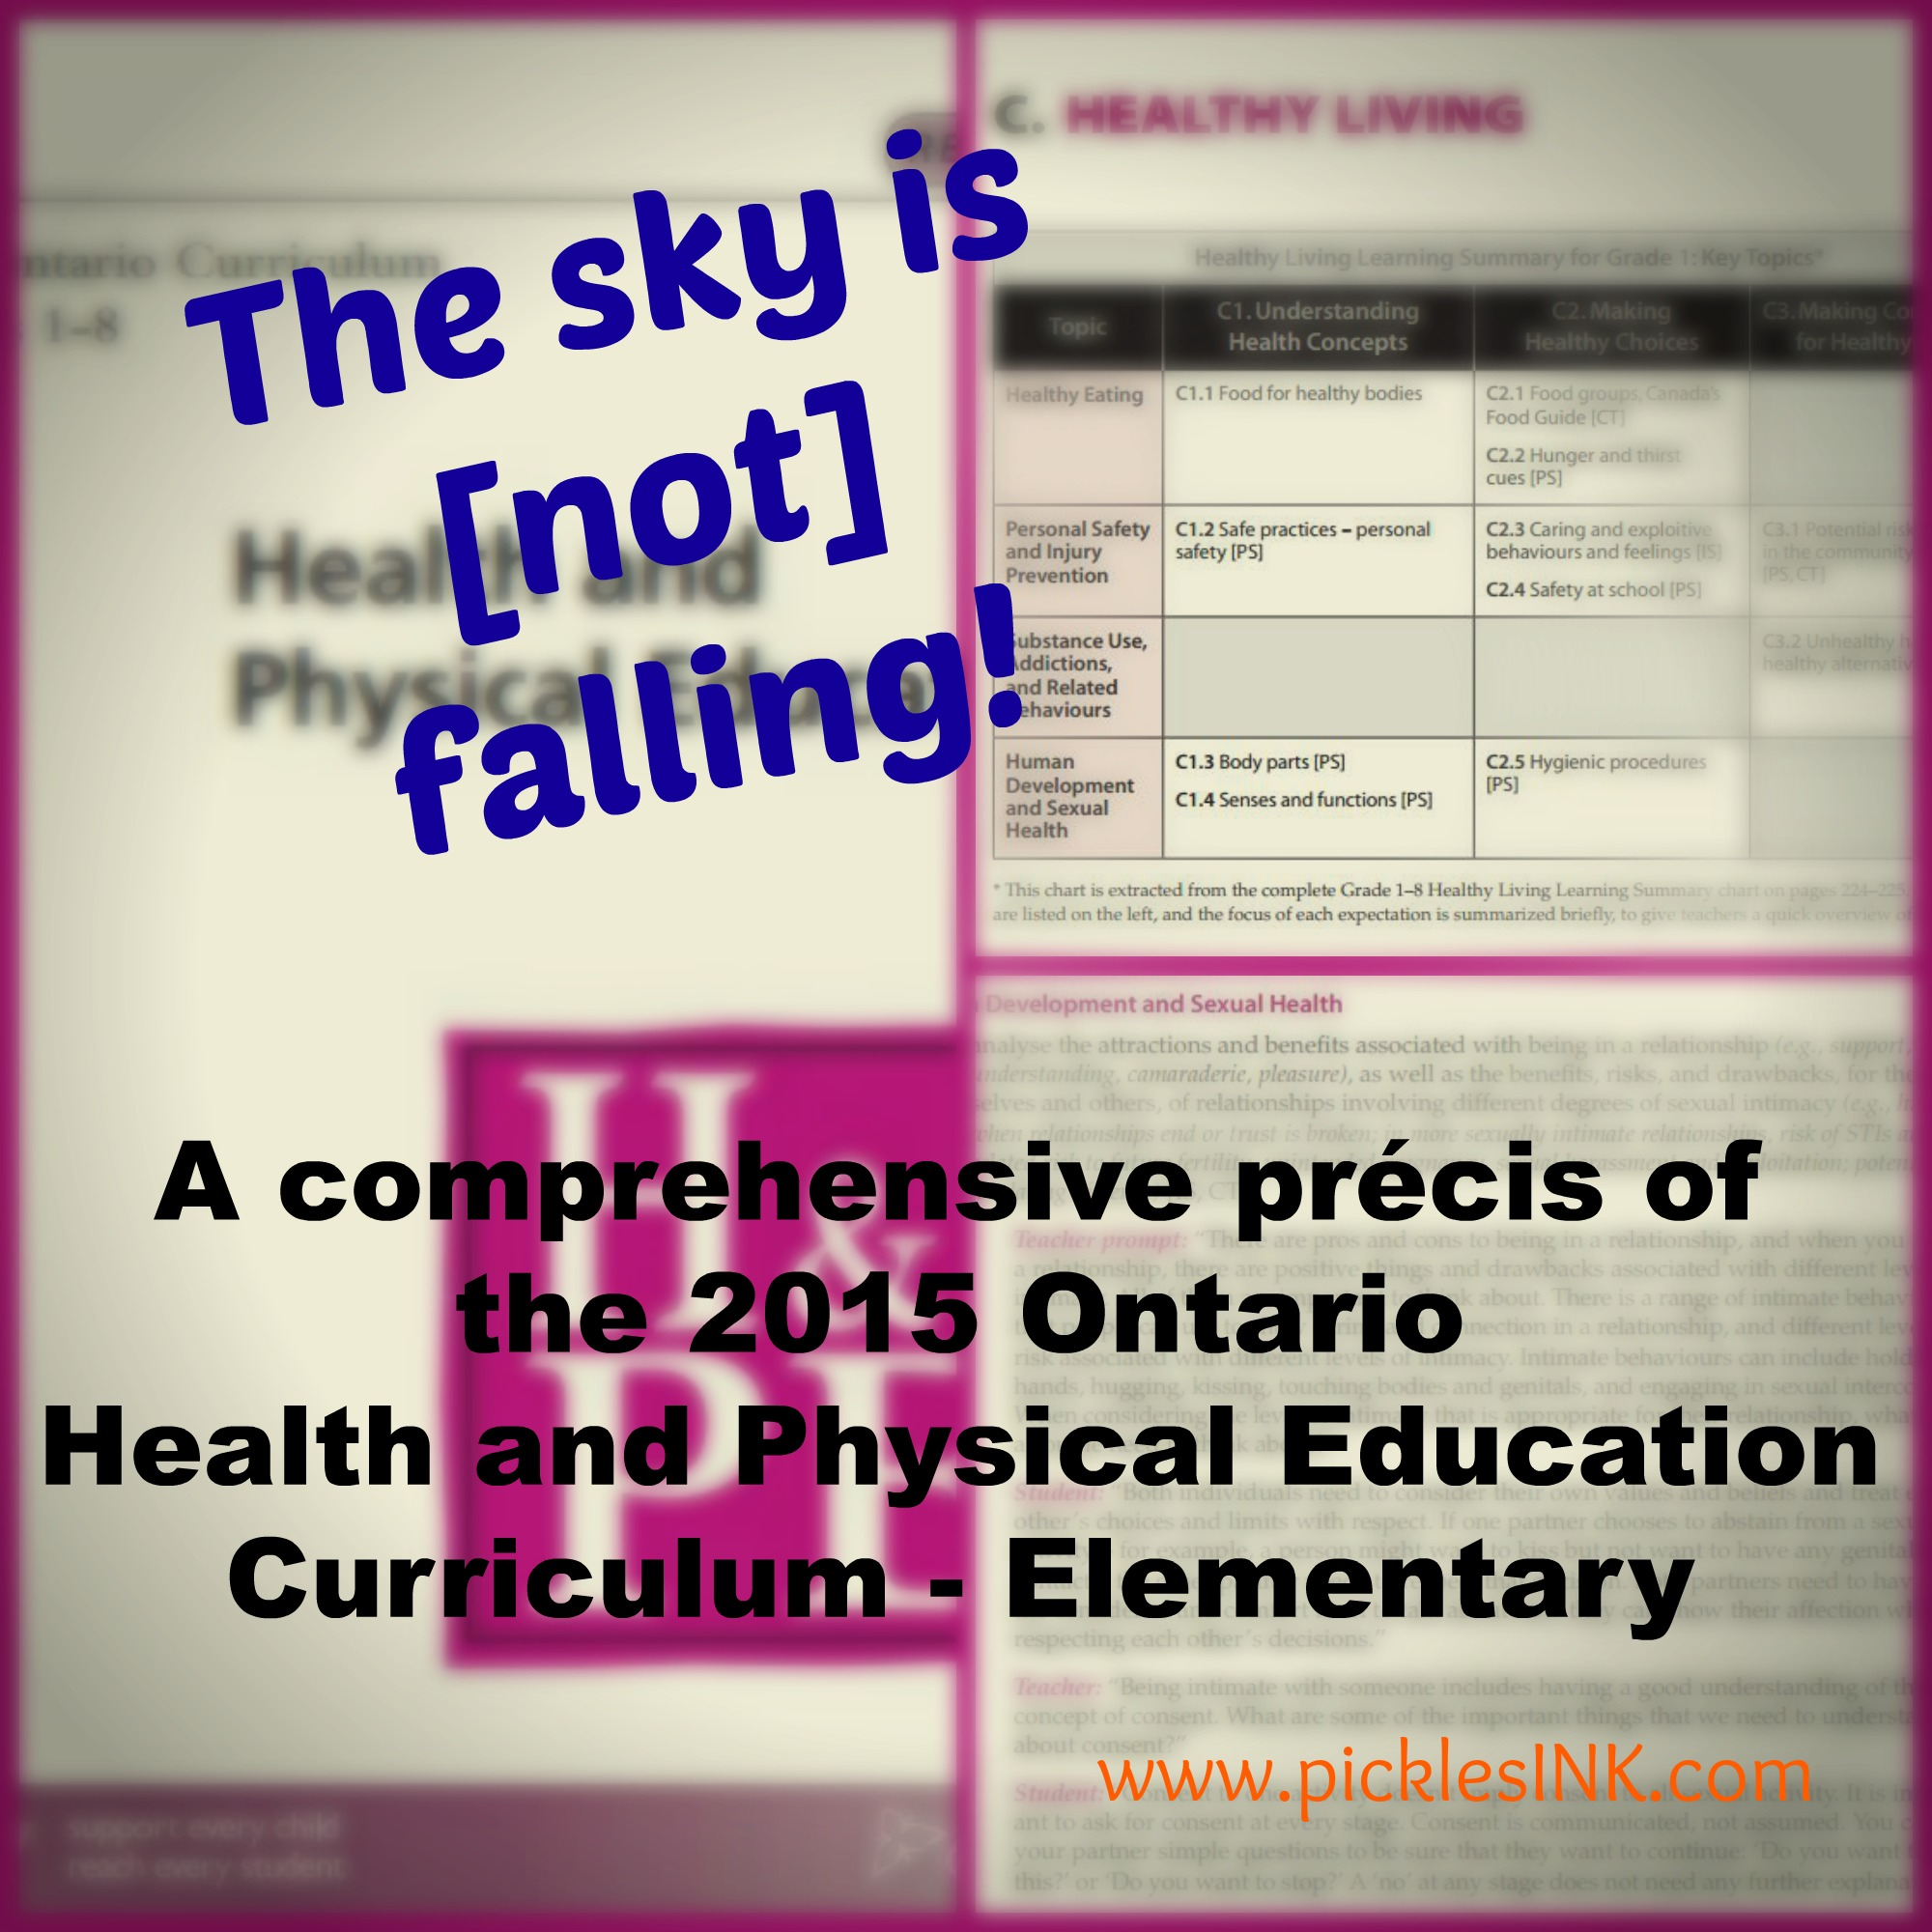 The sky is [not] falling! A comprehensive precis of the 2015 Ontario Health